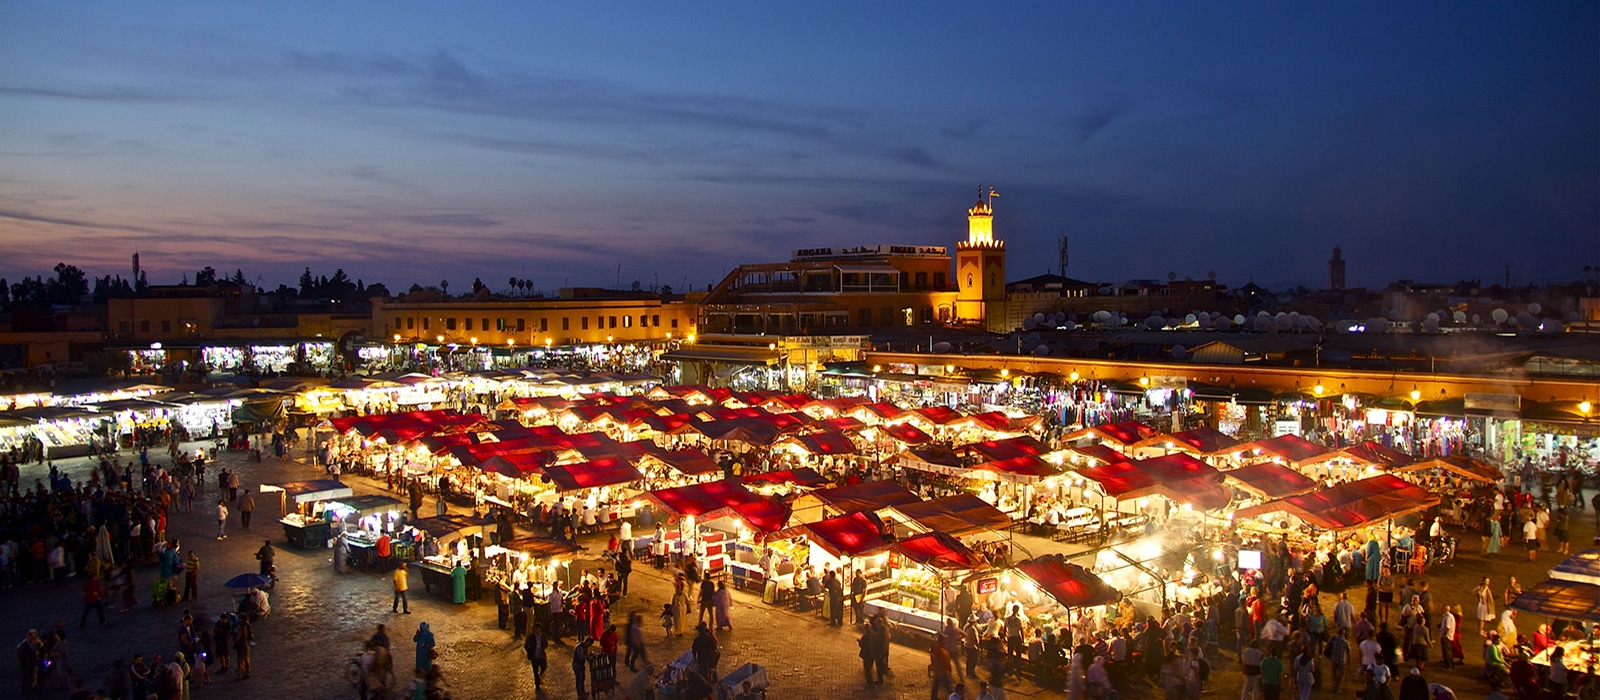 Photo de la Place Jemaa el-Fna, Marrakech, Maroc - Les Routes du Monde